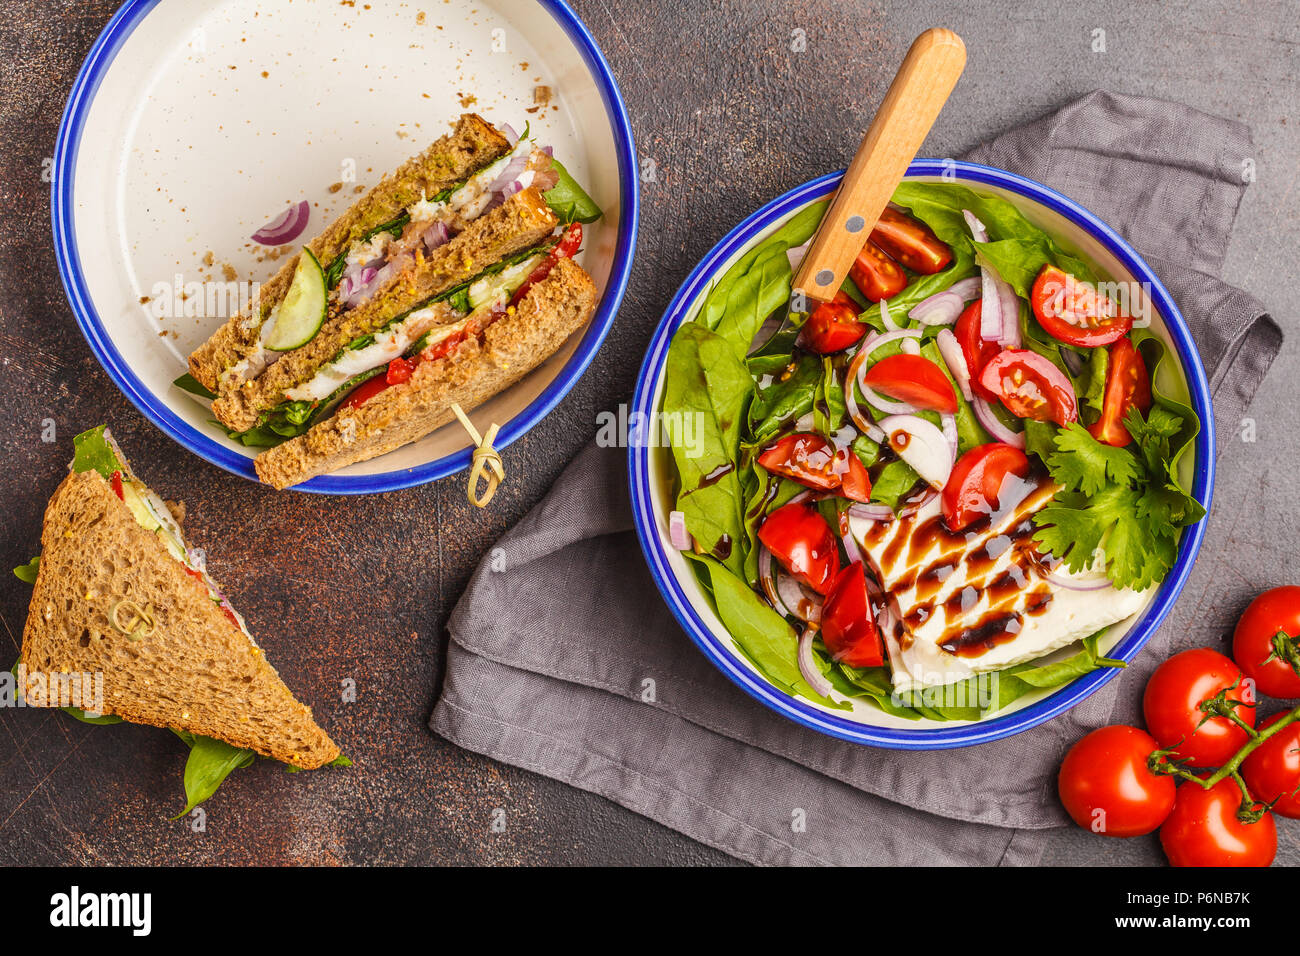 Bright summer salad with tomatoes, onions, balsamic and goat cheese with meat and cheese sandwiches. Food flat lay on dark background. - Stock Image